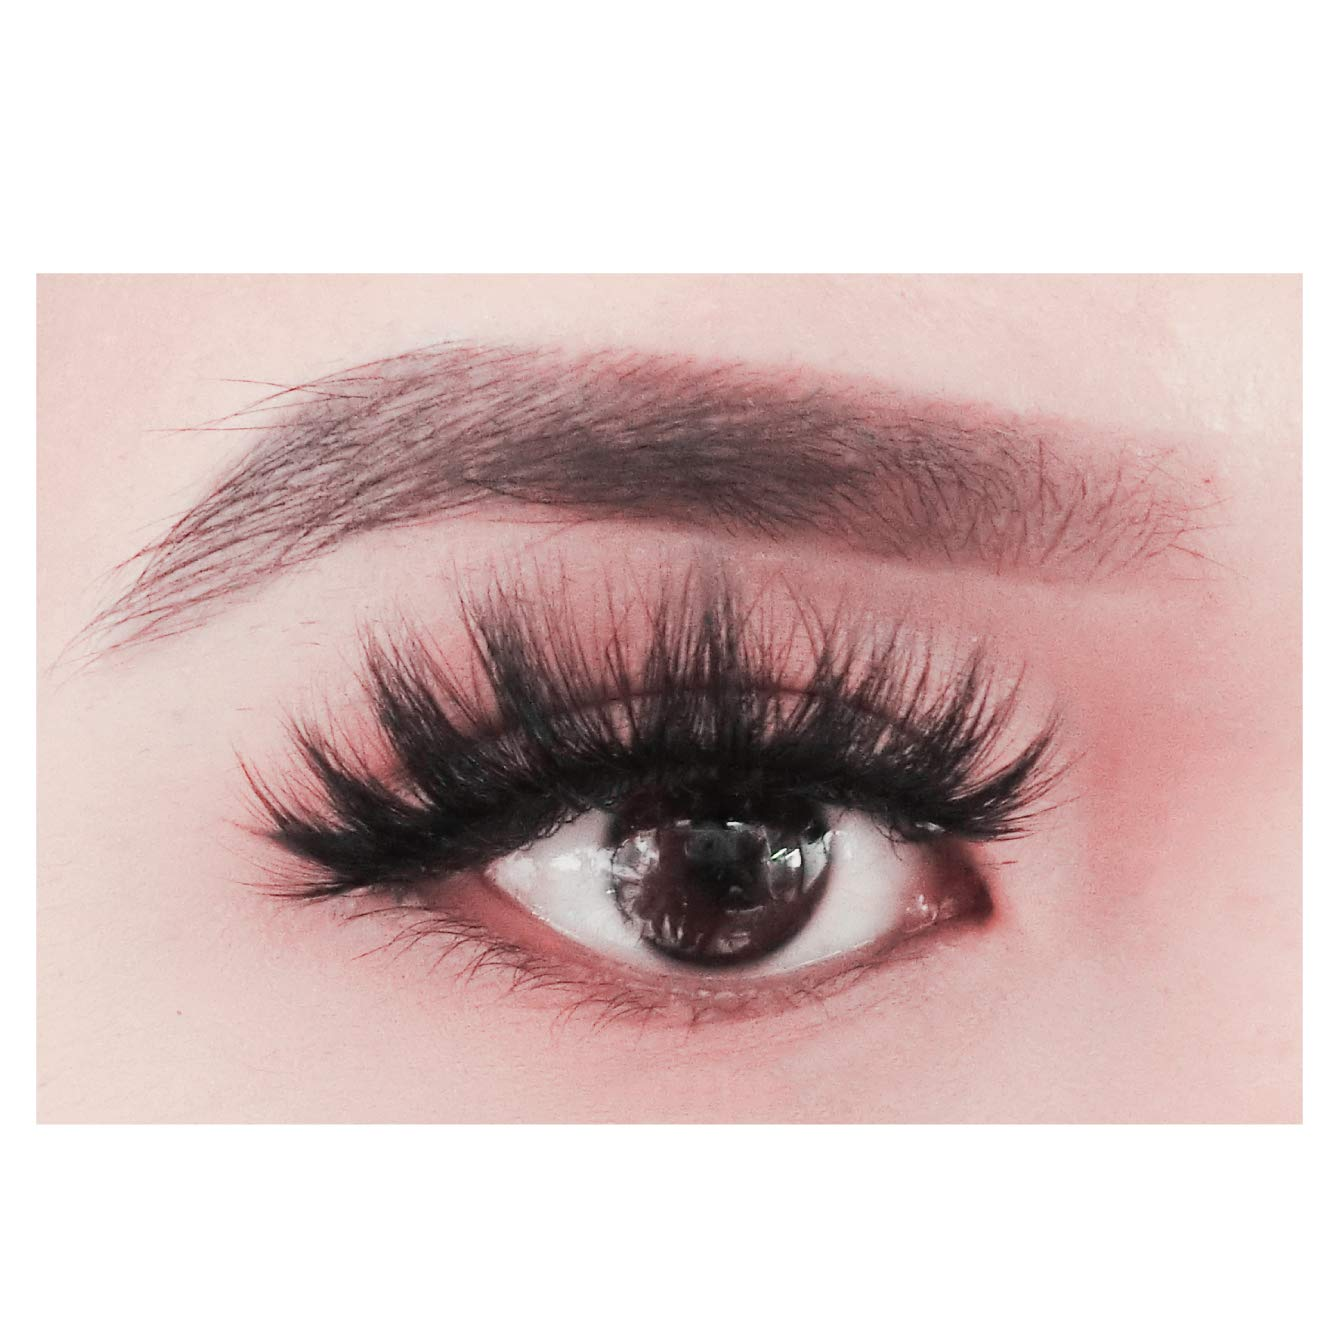 43abfca3de3 Amazon.com: BEPHOLAN Mink Lashes | 100% Siberian Mink Fur False Eyelashes |  Dramatic Round Look | 3D Layered Effect | 100% Handmade & Cruelty-Free ...